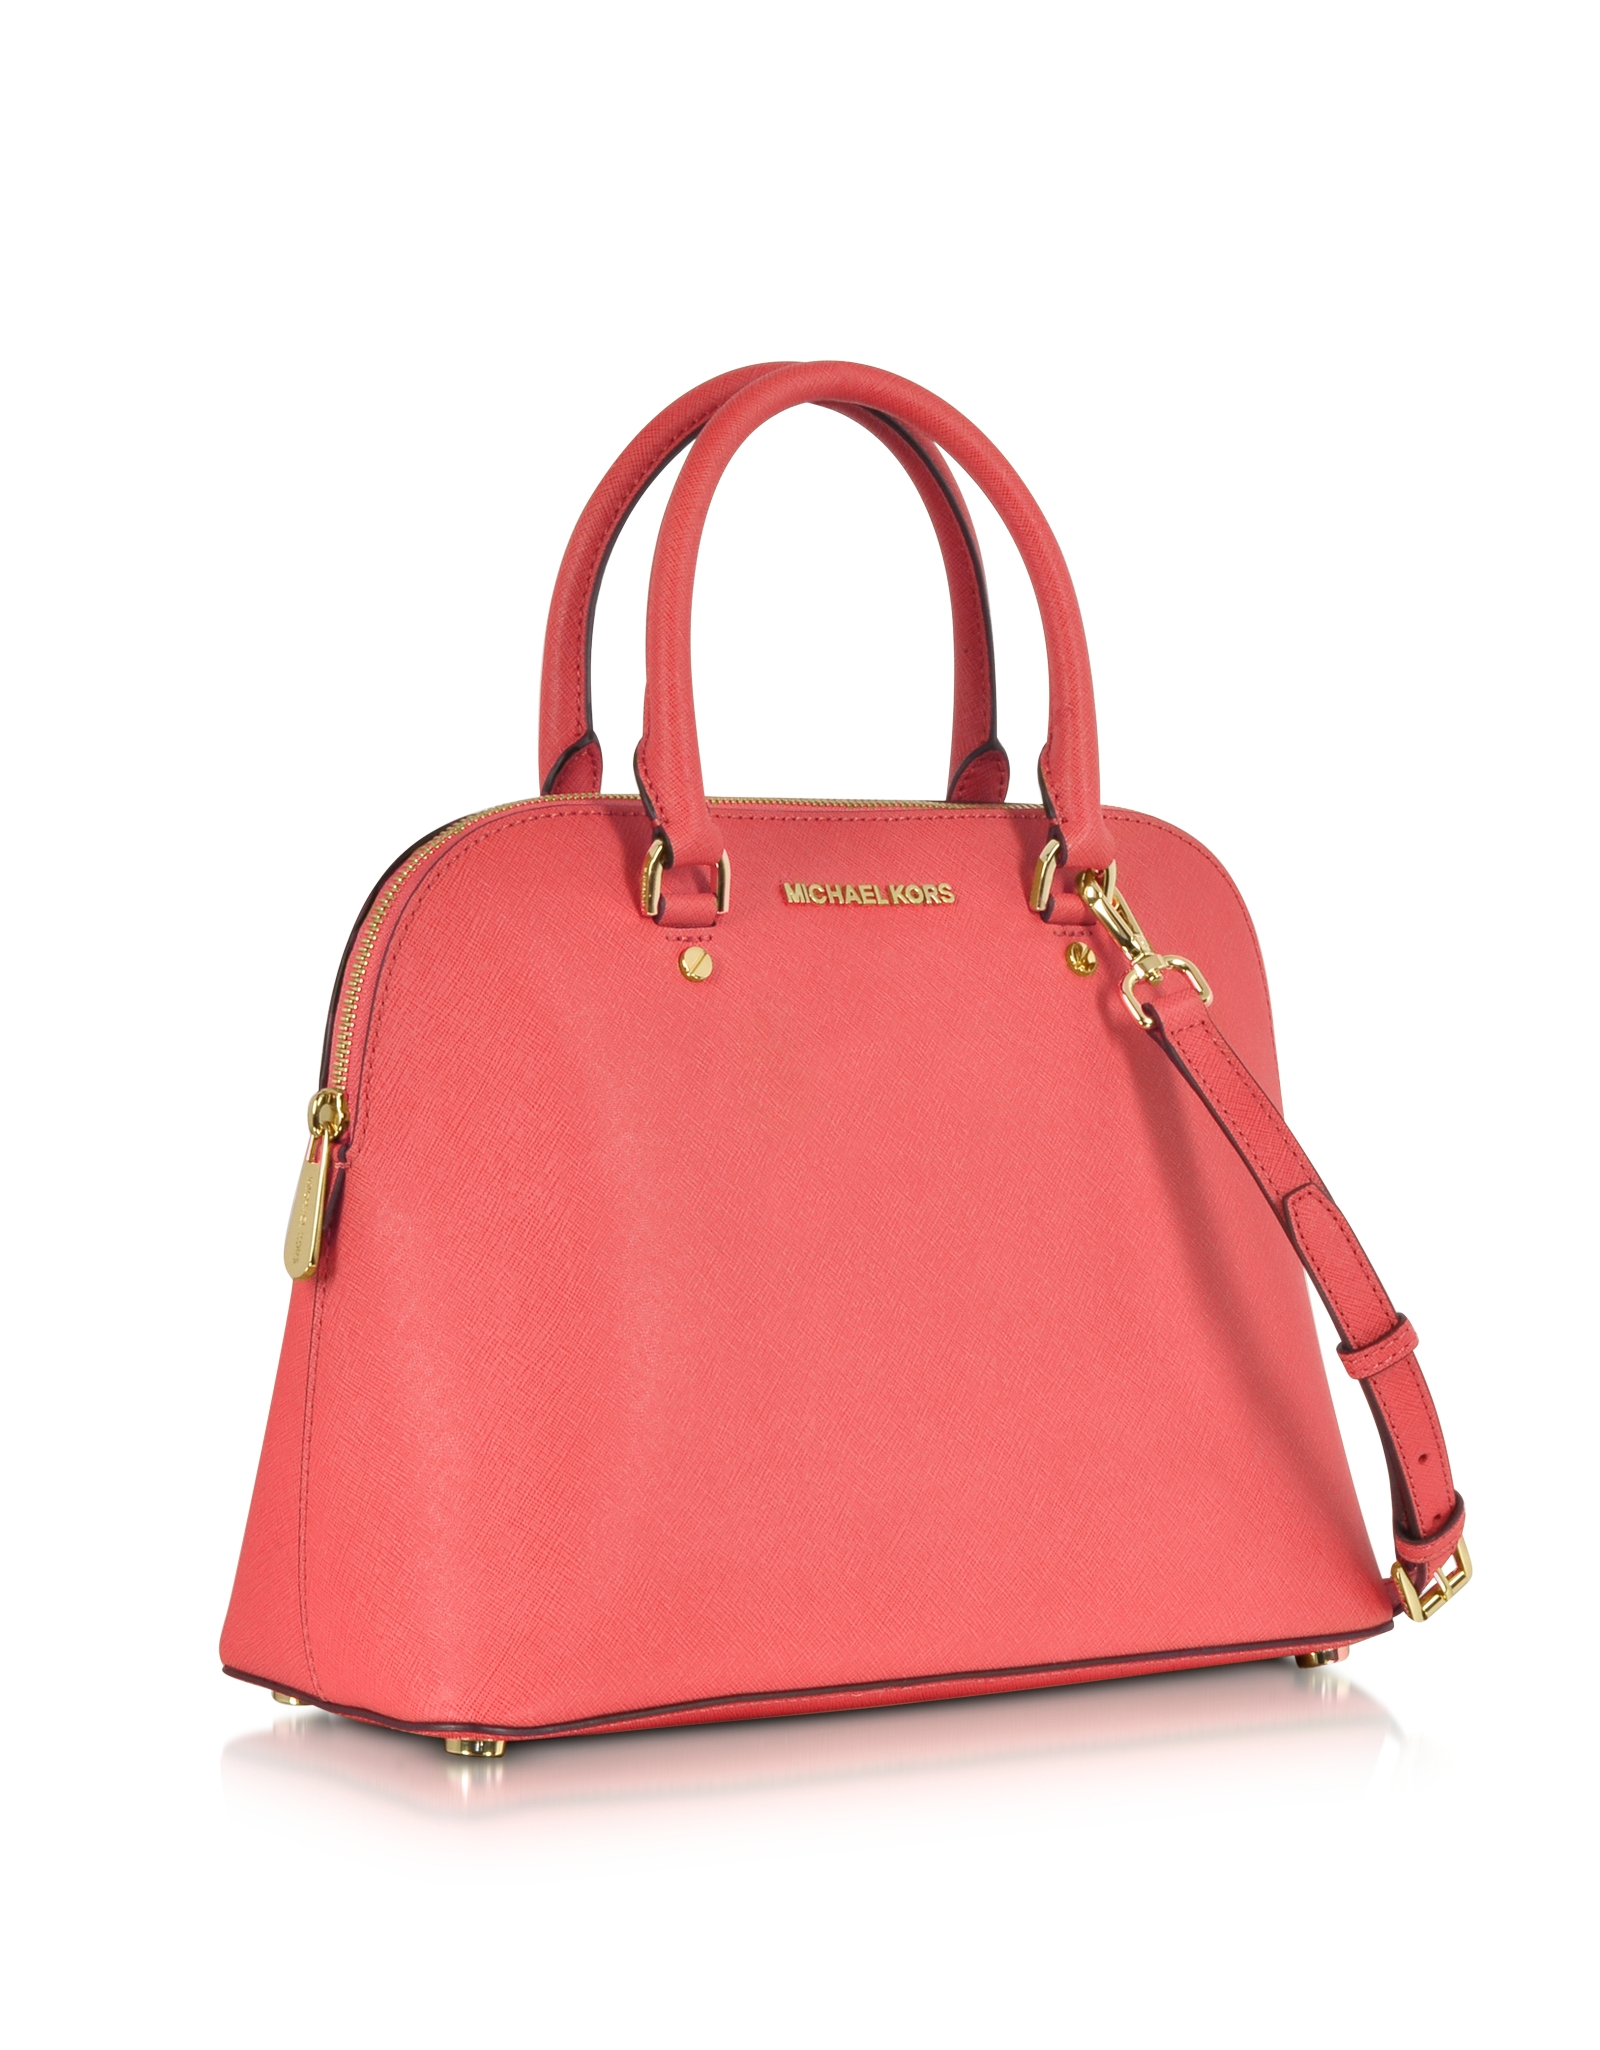 Michael Kors Cindy Large